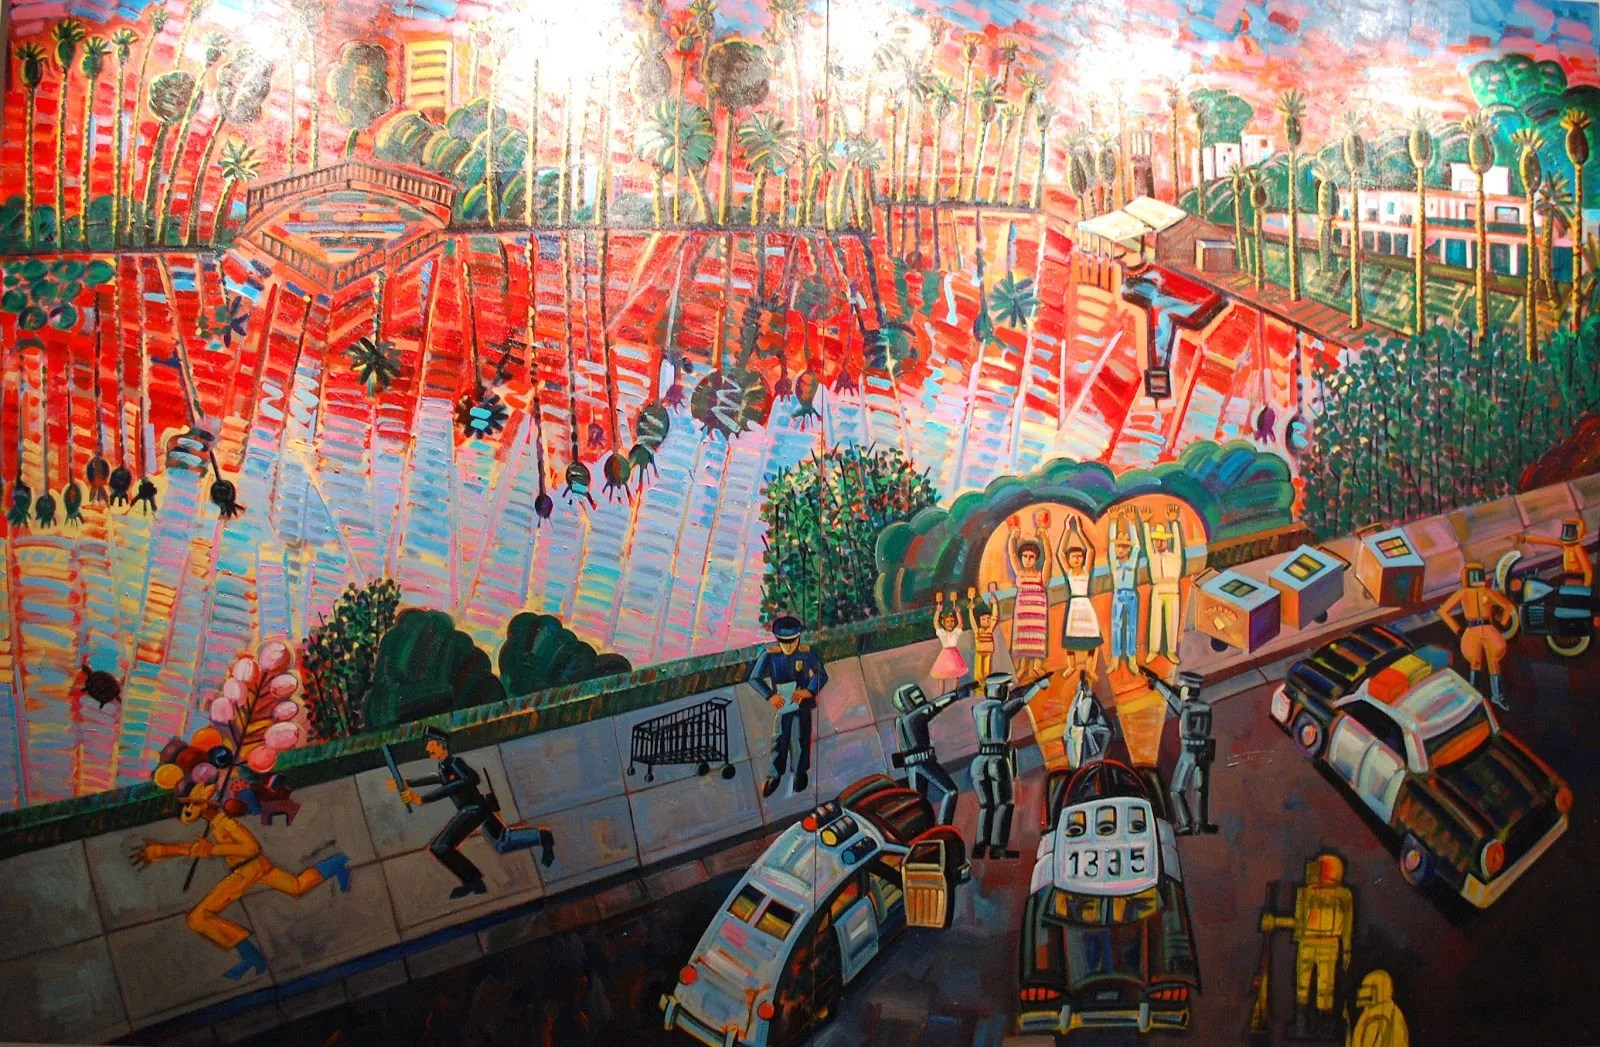 Chicano Now! American Expression by Frank Romero from Cheech Marin's art collection